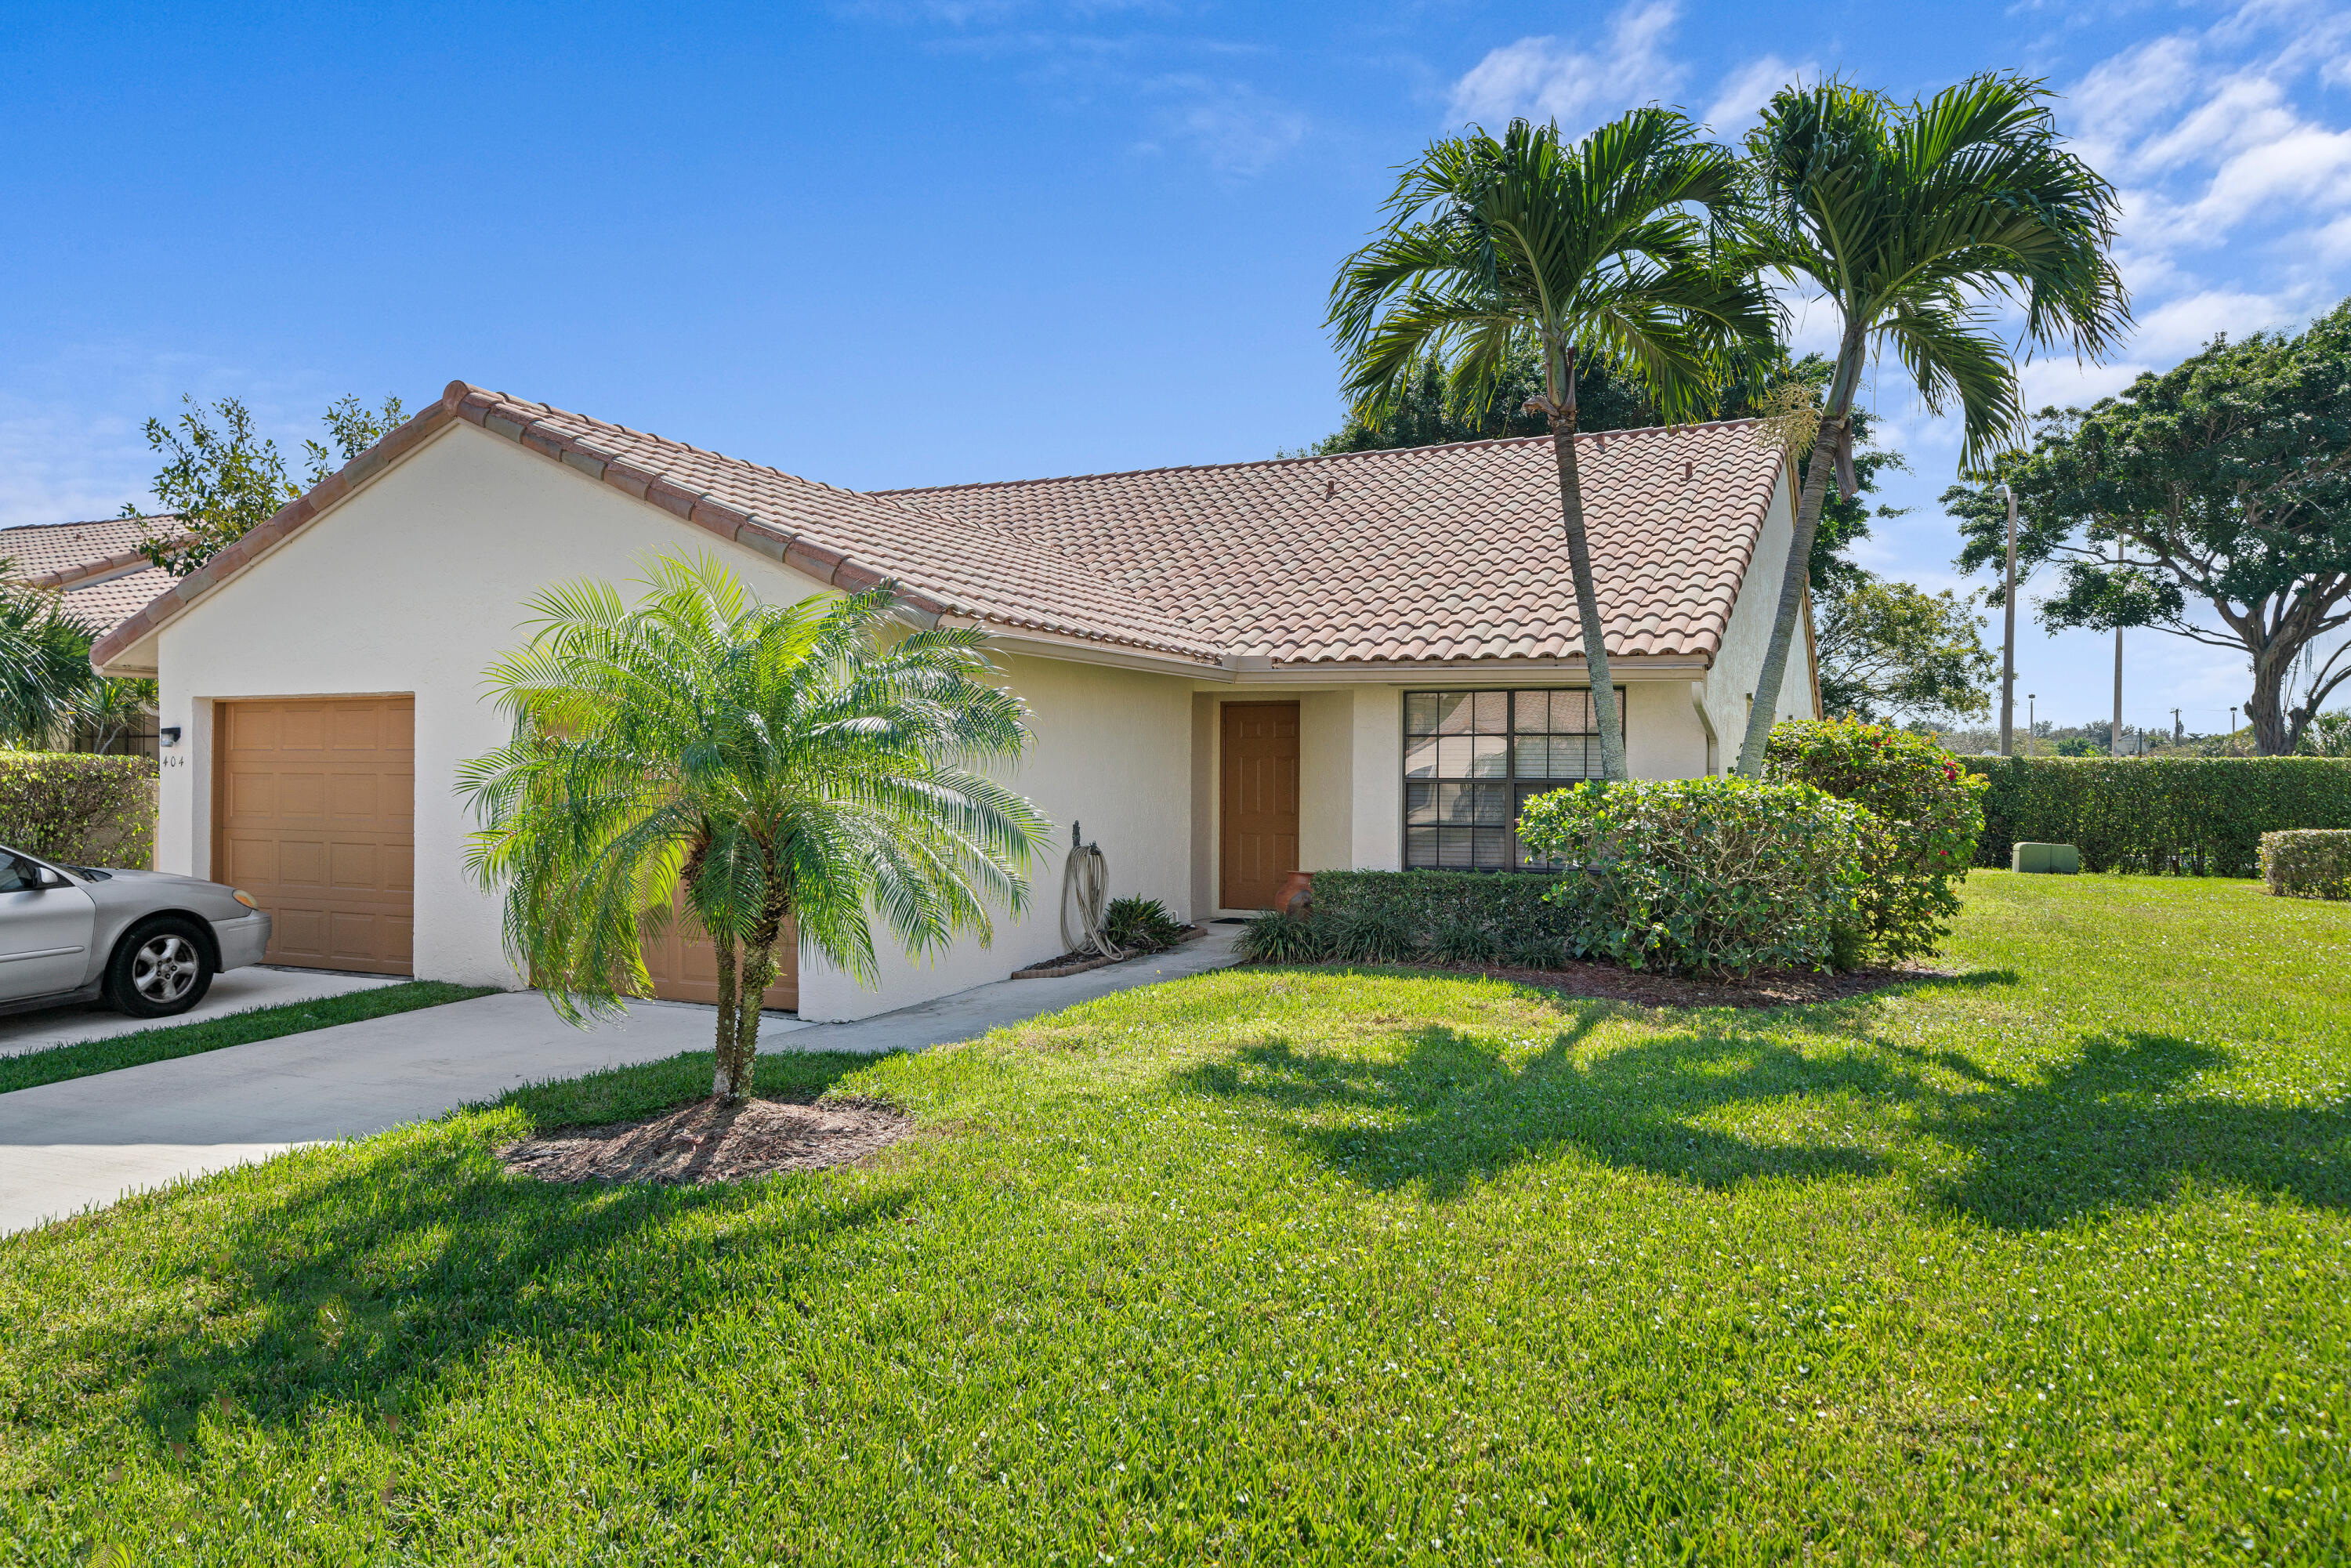 Home for sale in Windwood Boca Raton Florida